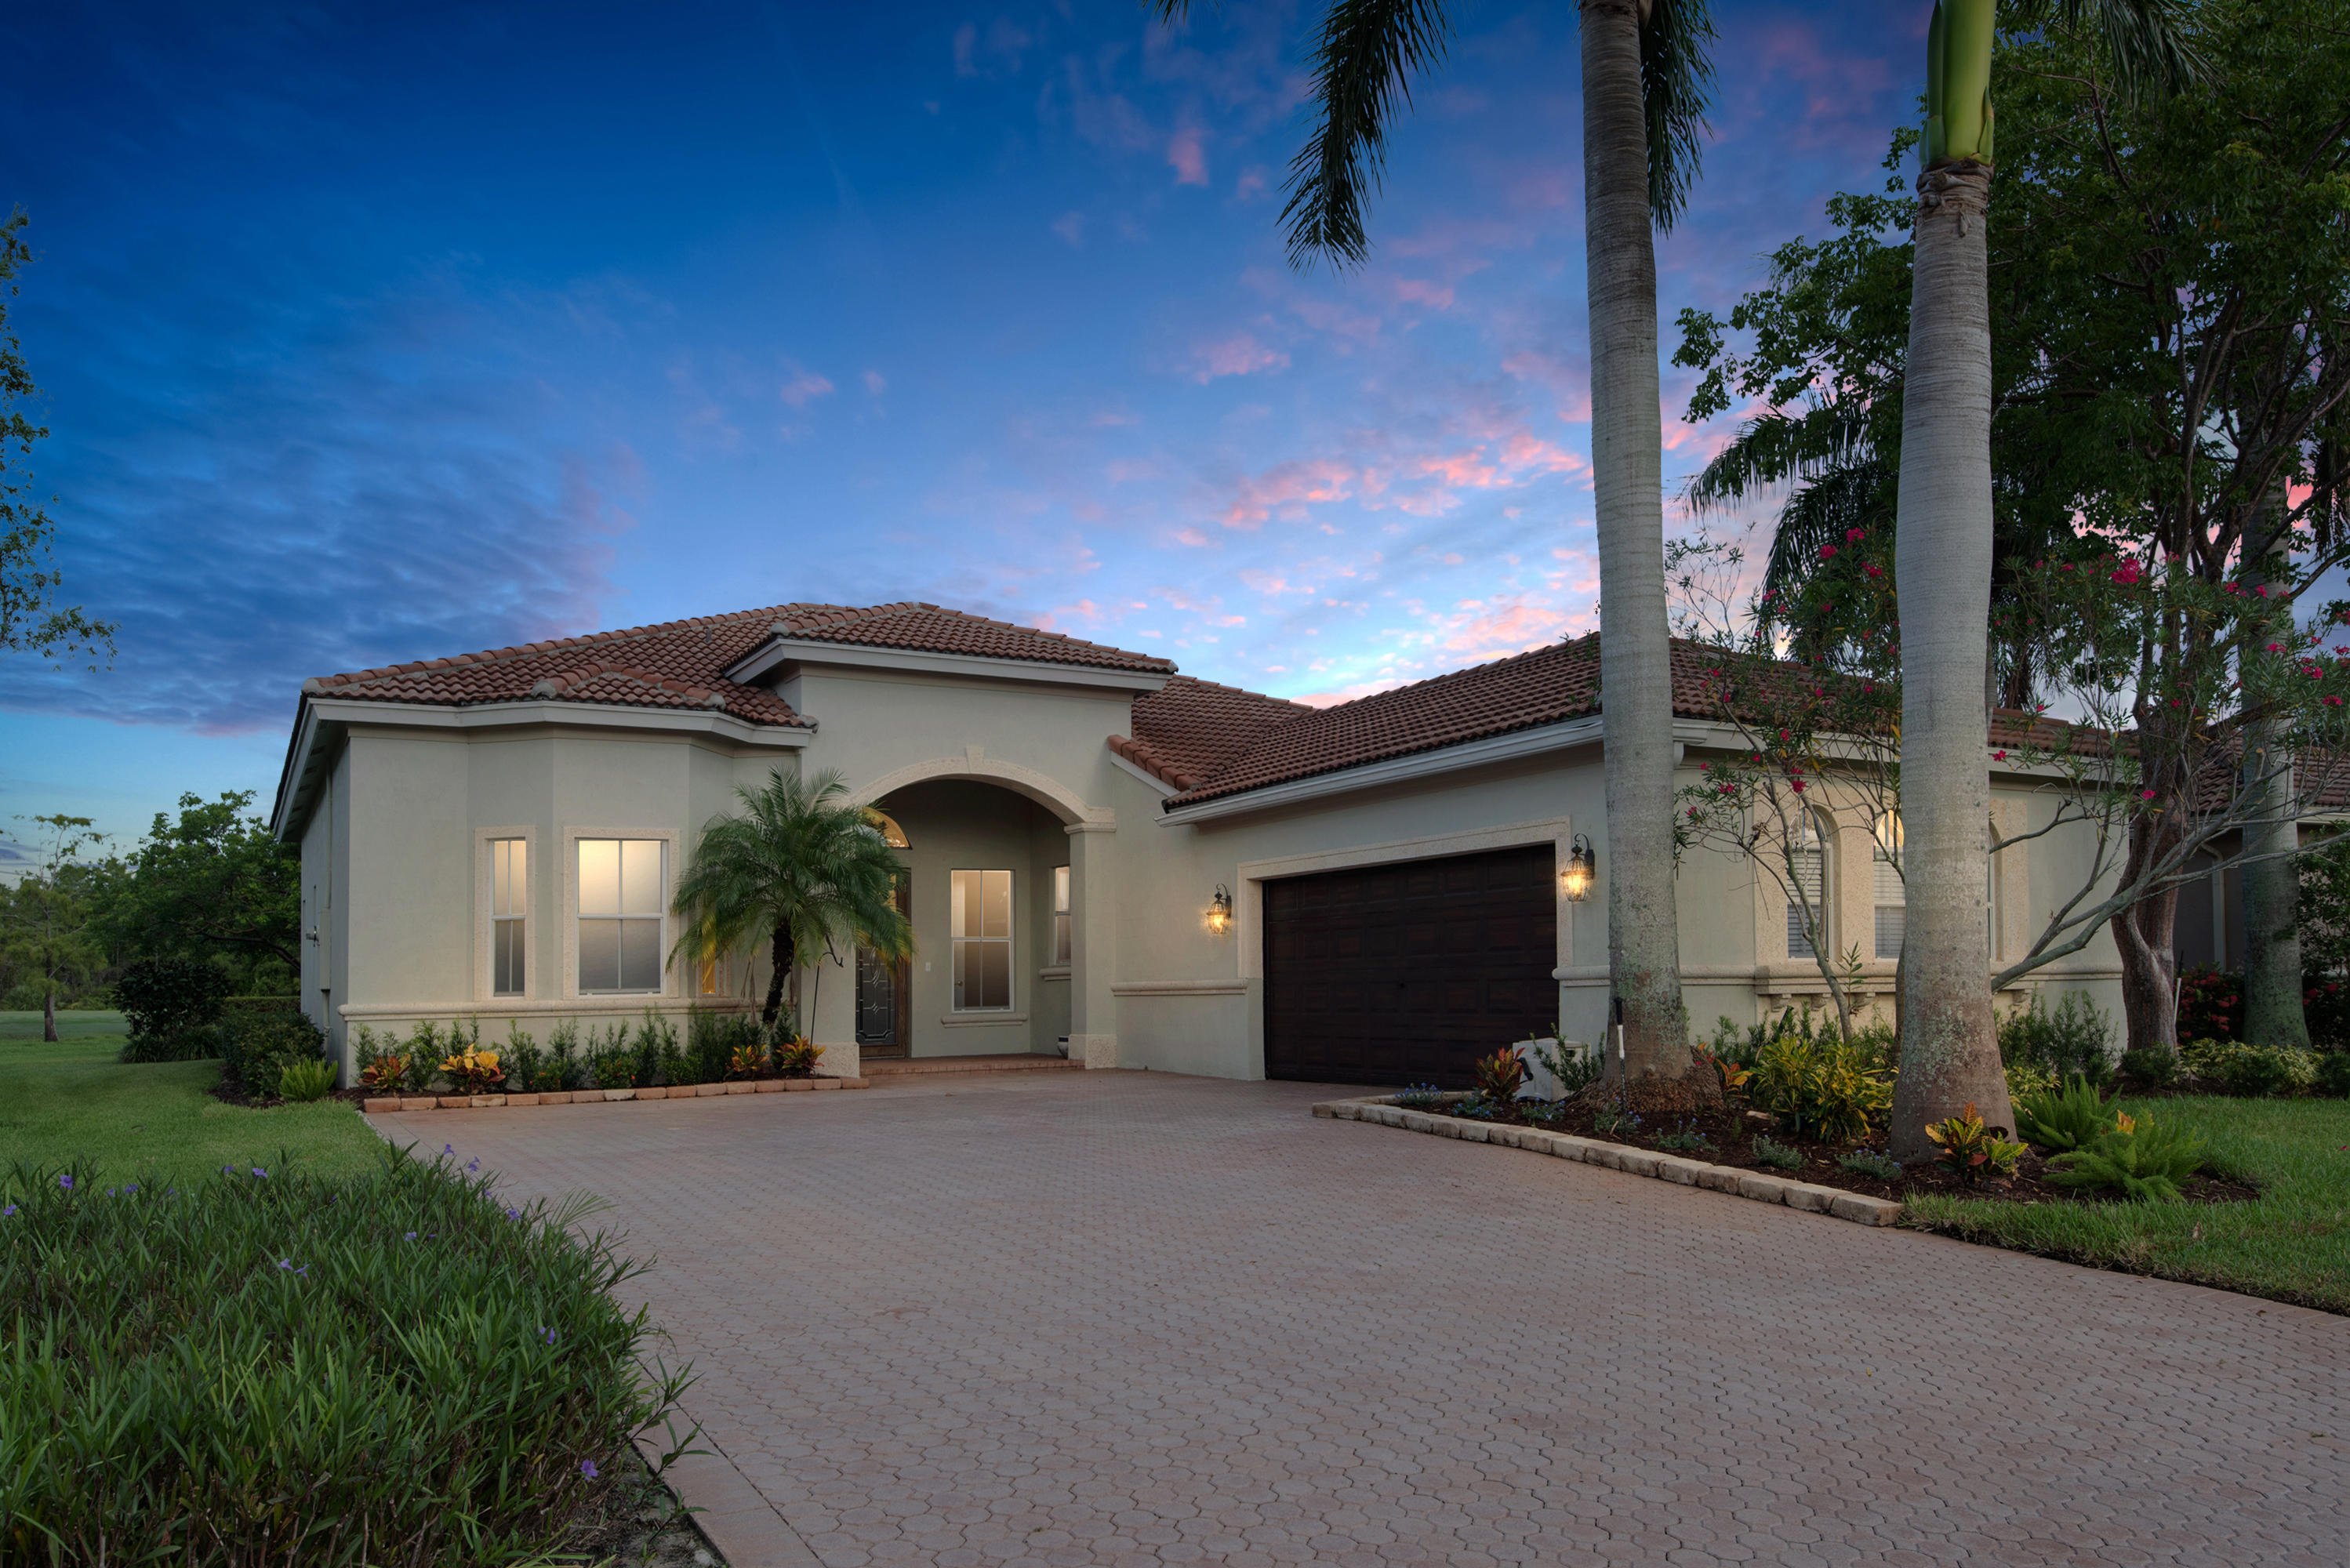 7773 Preserve Drive, West Palm Beach, Florida 33412, 3 Bedrooms Bedrooms, ,2.1 BathroomsBathrooms,A,Single family,Preserve,RX-10459519